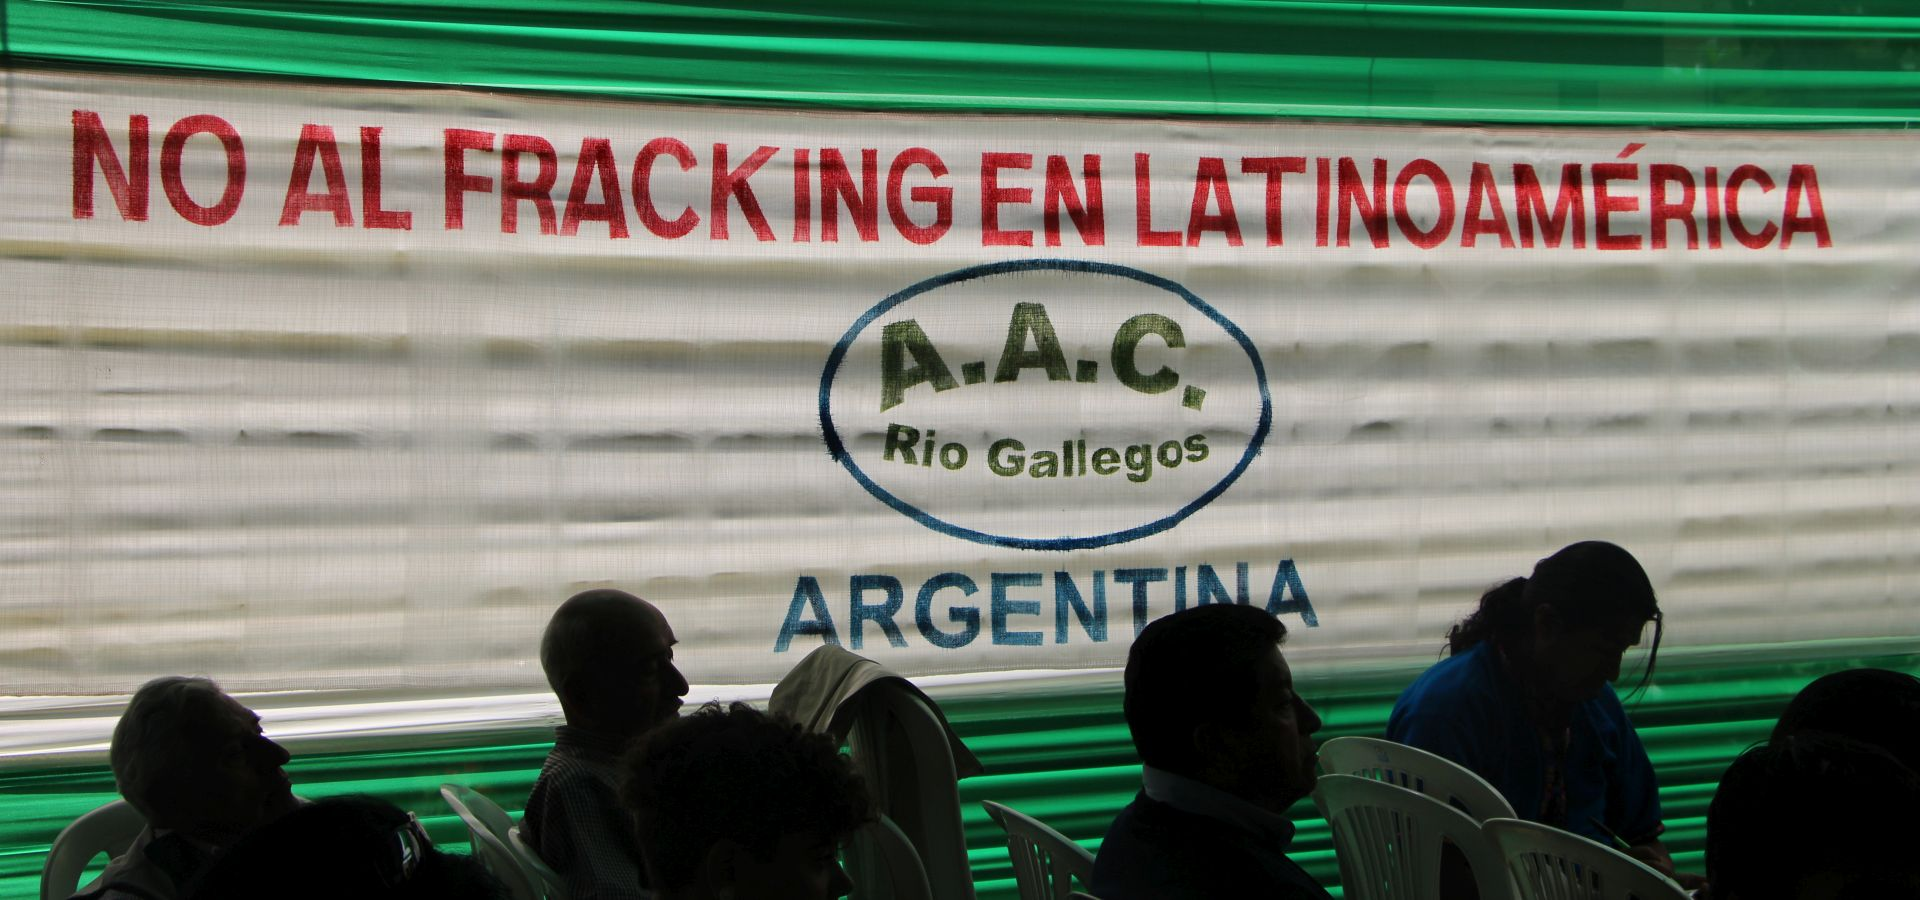 Silhouttes of people sitting in rows in the foreground, in the background a banner with a statement against fracking.